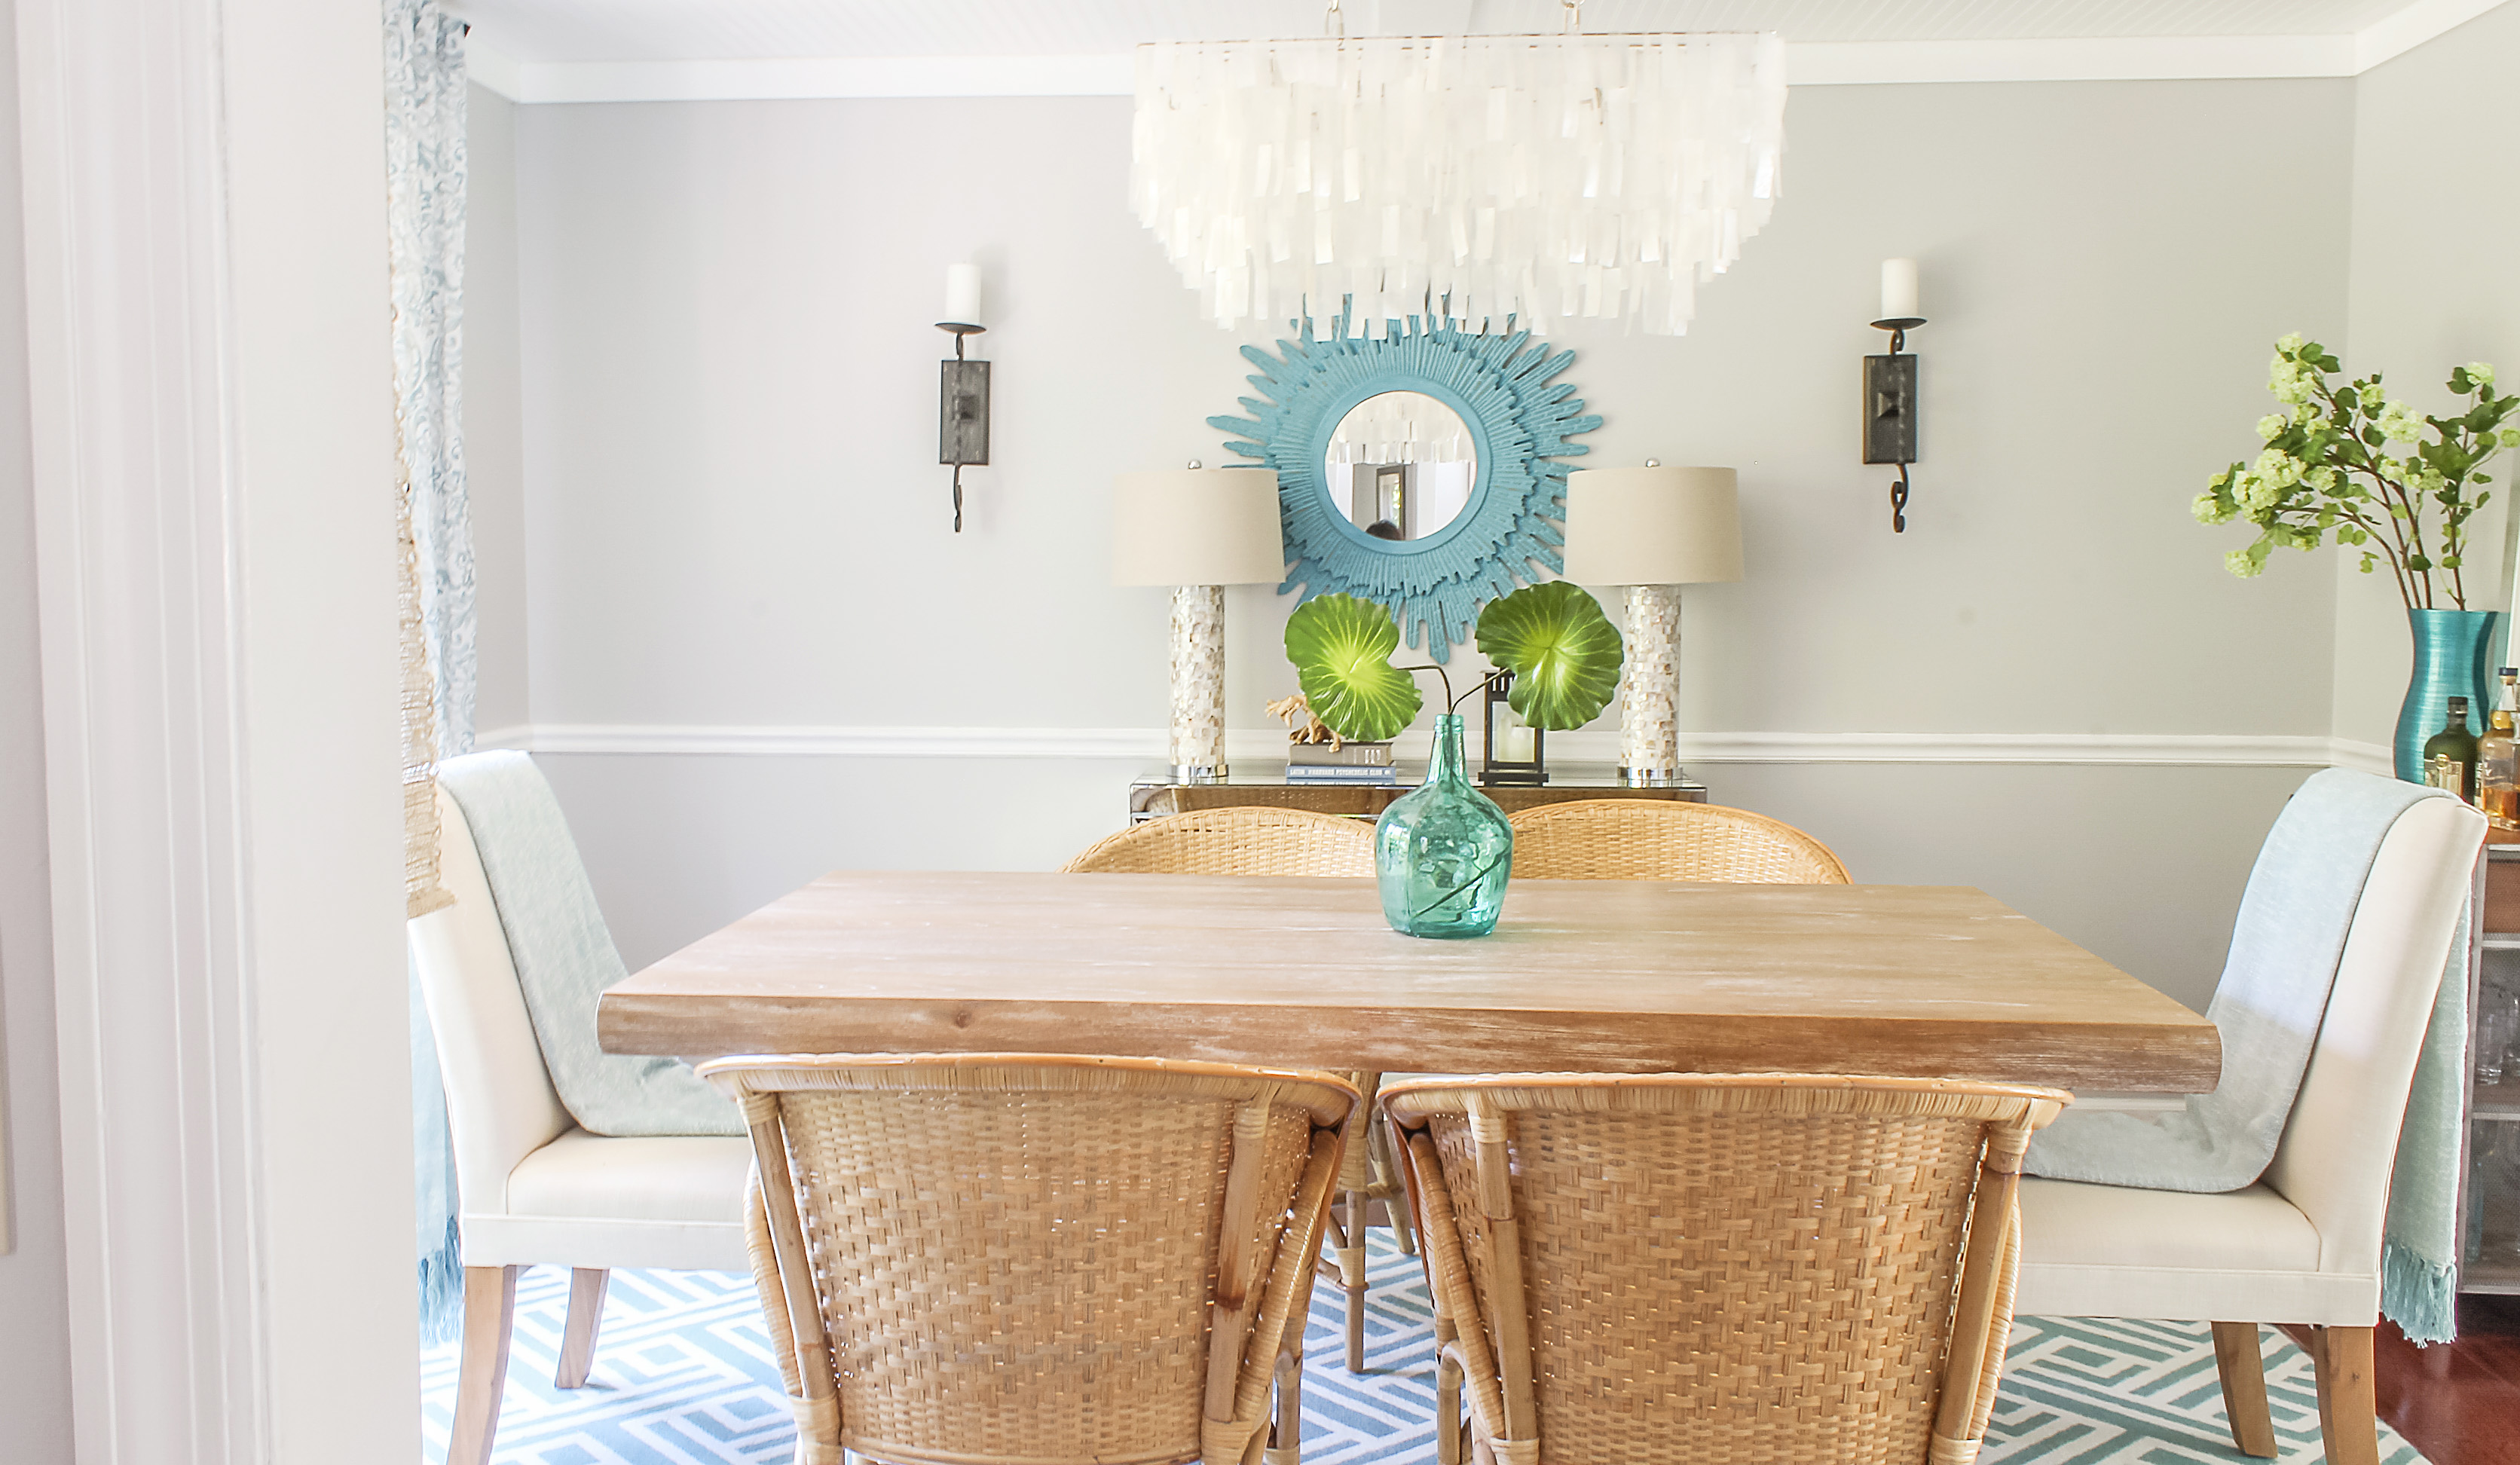 Rattan Chairs In Modern Transitional Dining Room